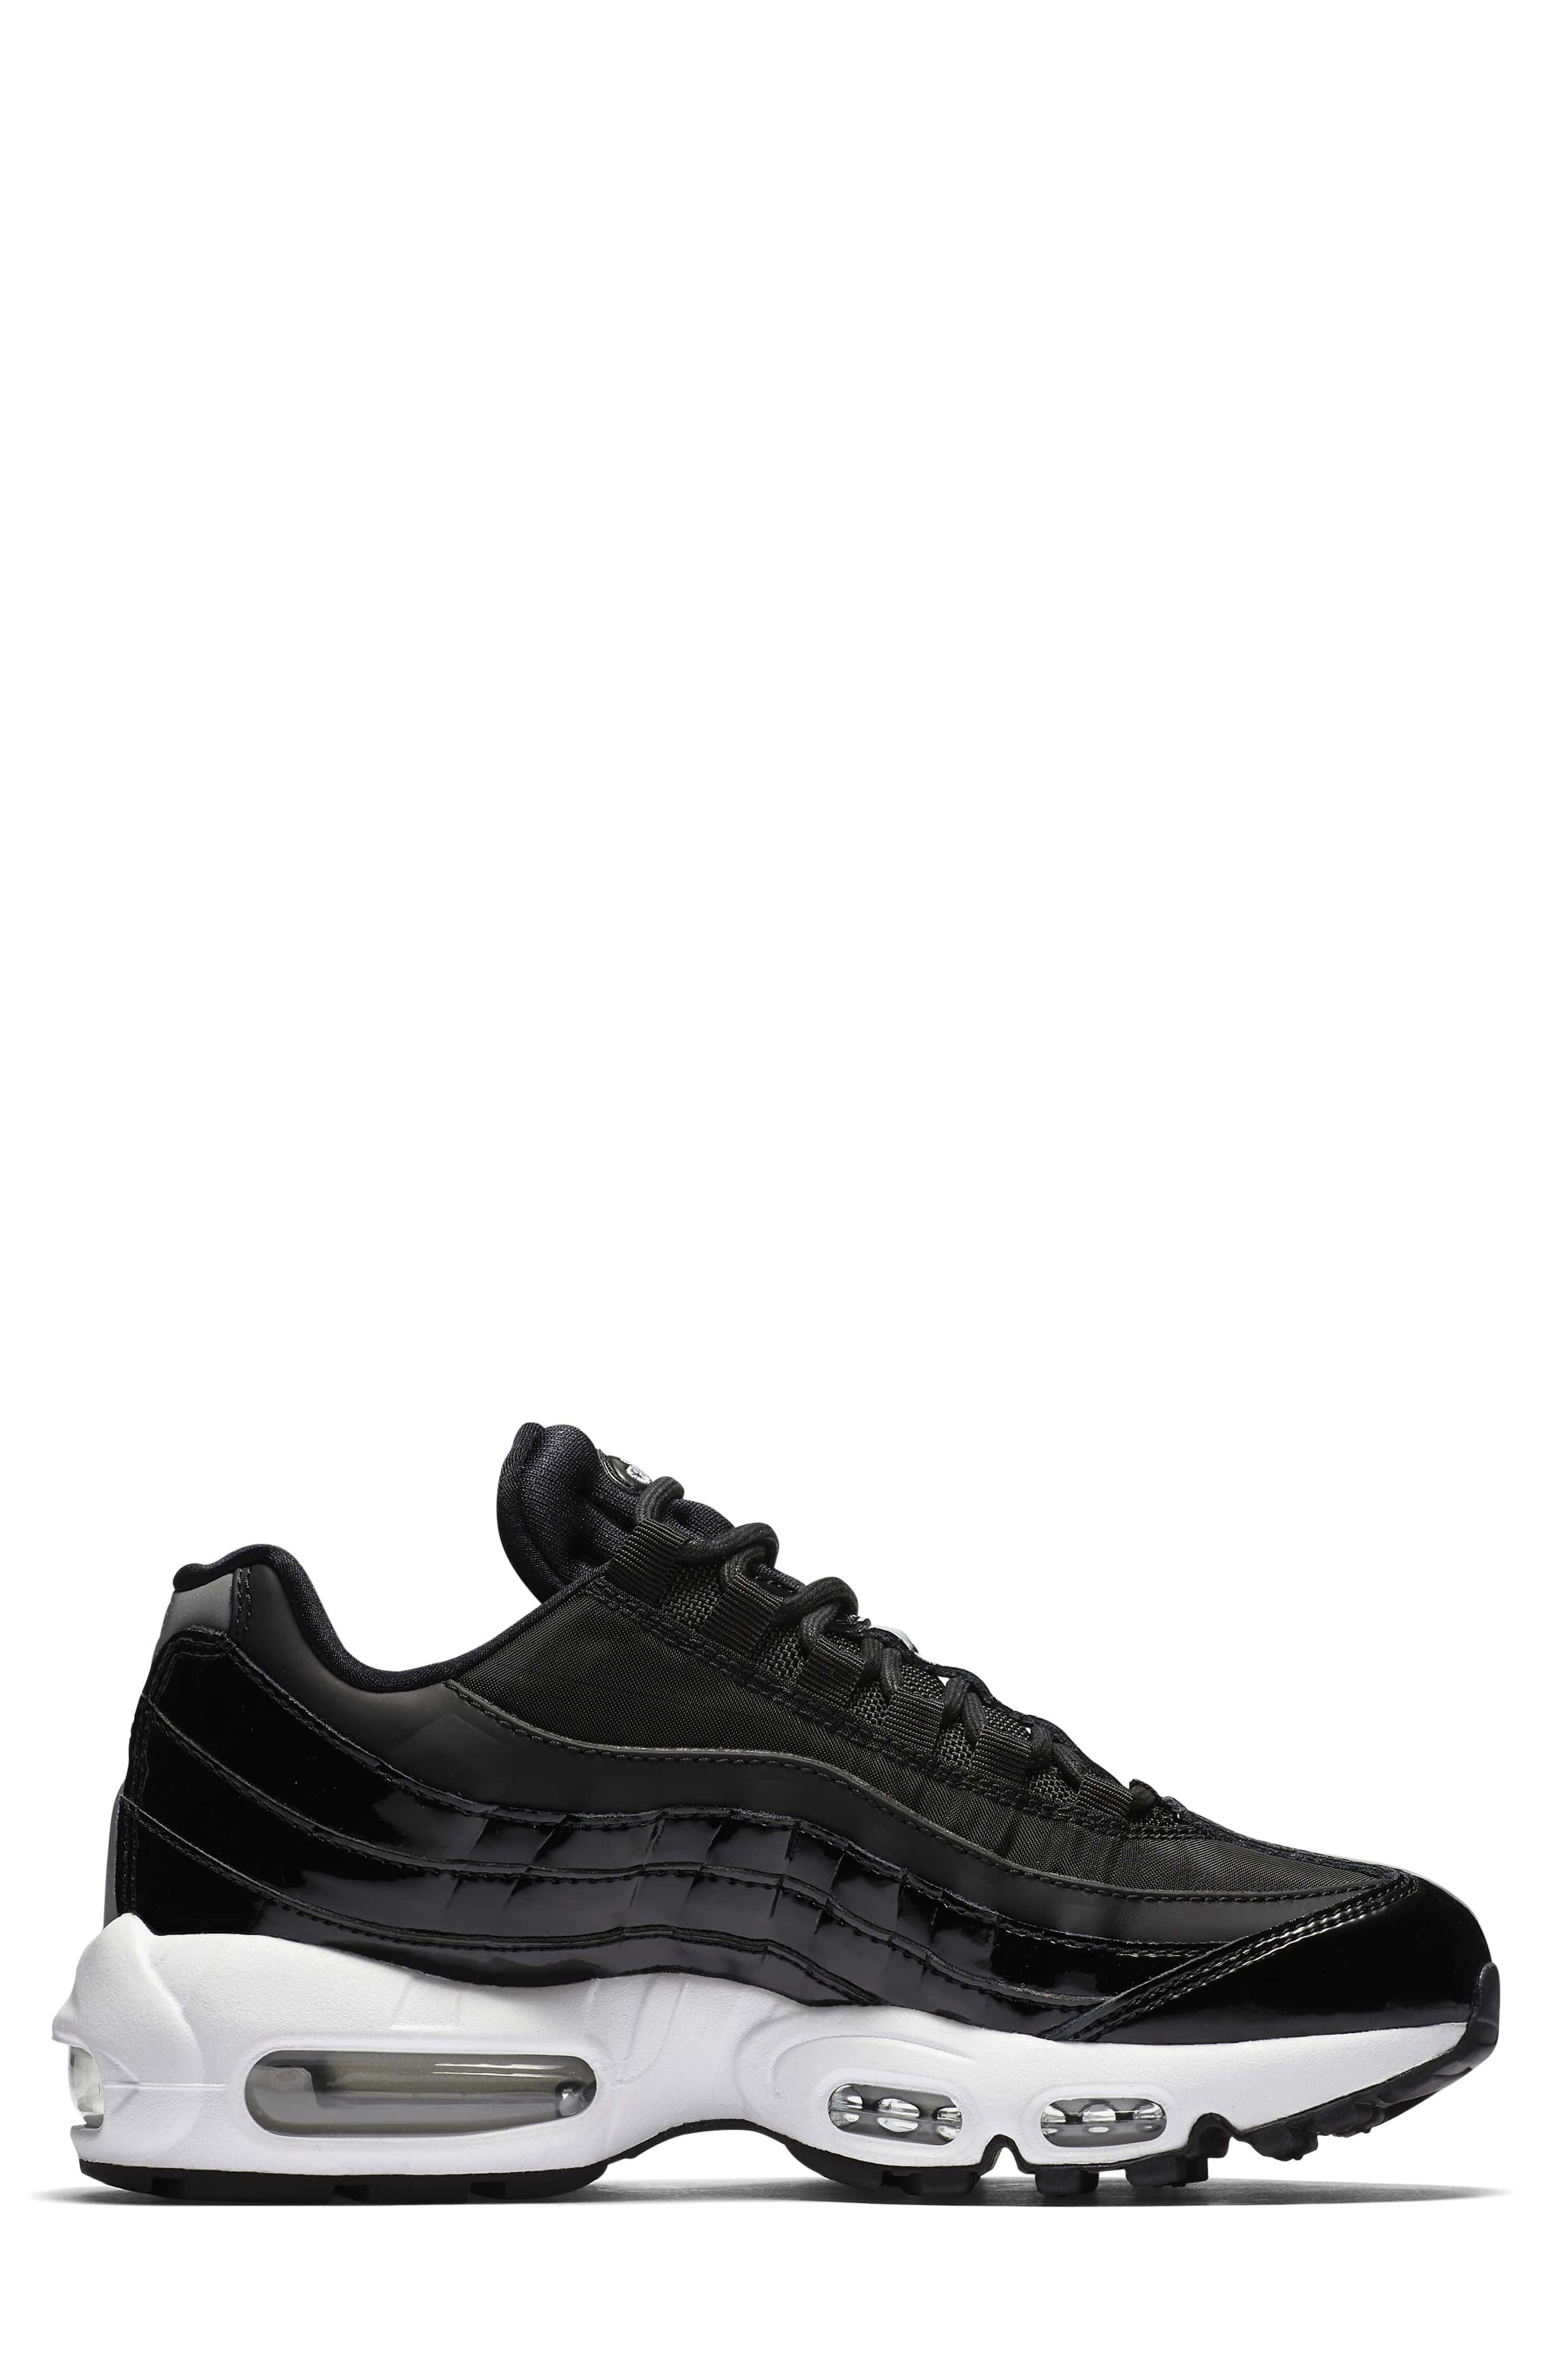 Air Max 95 Special Edition Running Shoe,                             Alternate thumbnail 3, color,                             001